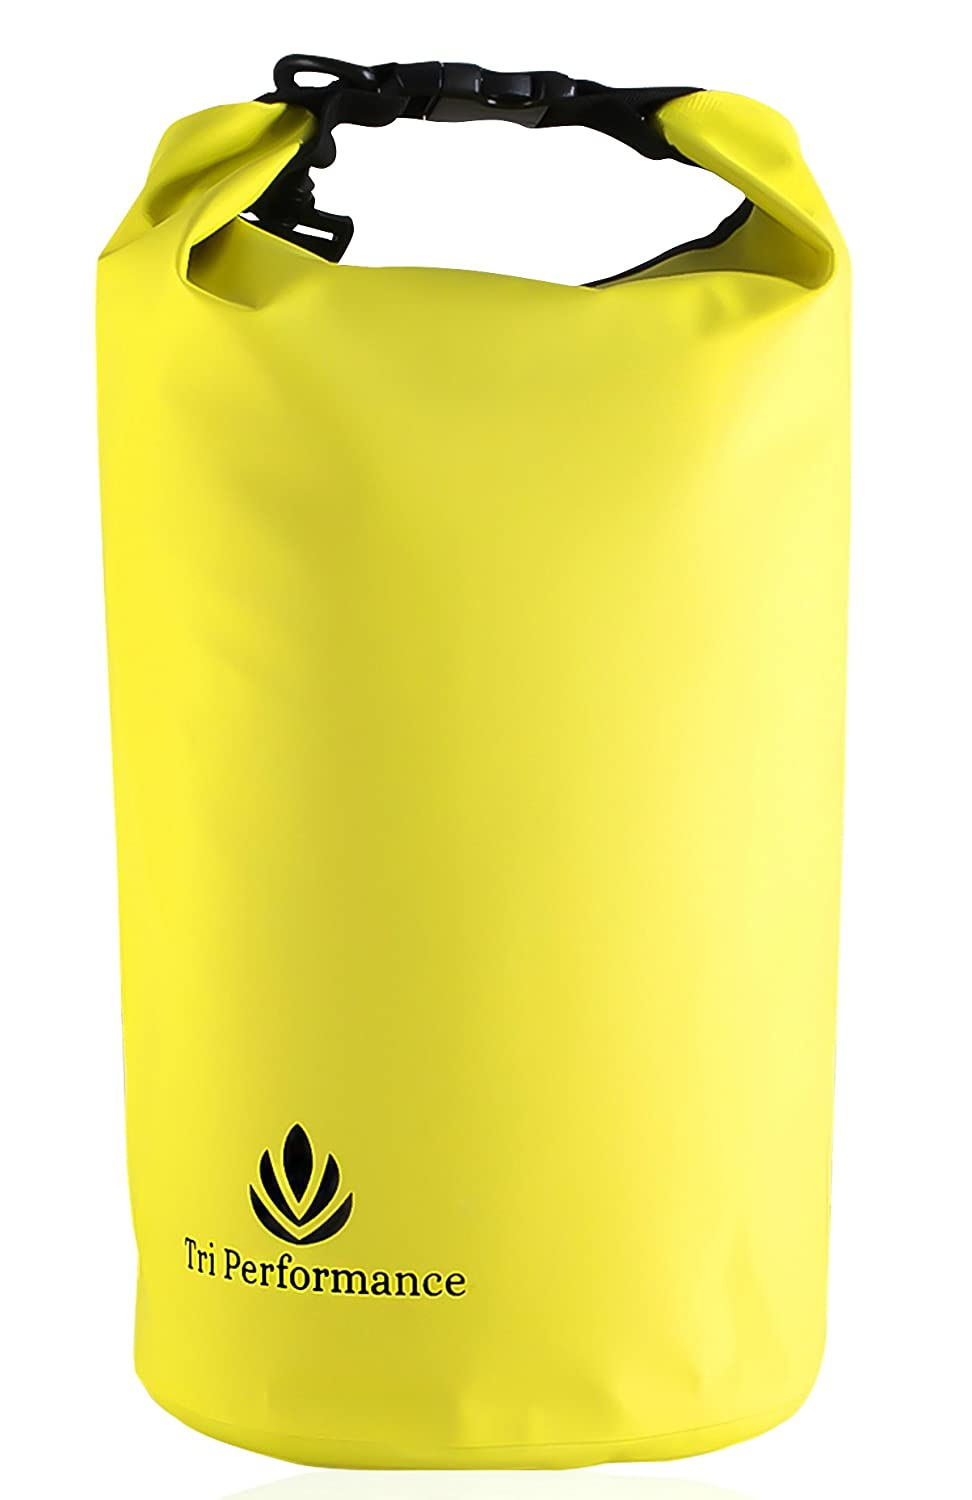 Premium Waterproof Dry Bag Sack Protect Your Gear From The Elements When Rafting Fishing Swimming SUP Boating Camping Skiing Kayaking Motorcycling Durable Adjustable Shoulder Strap Included